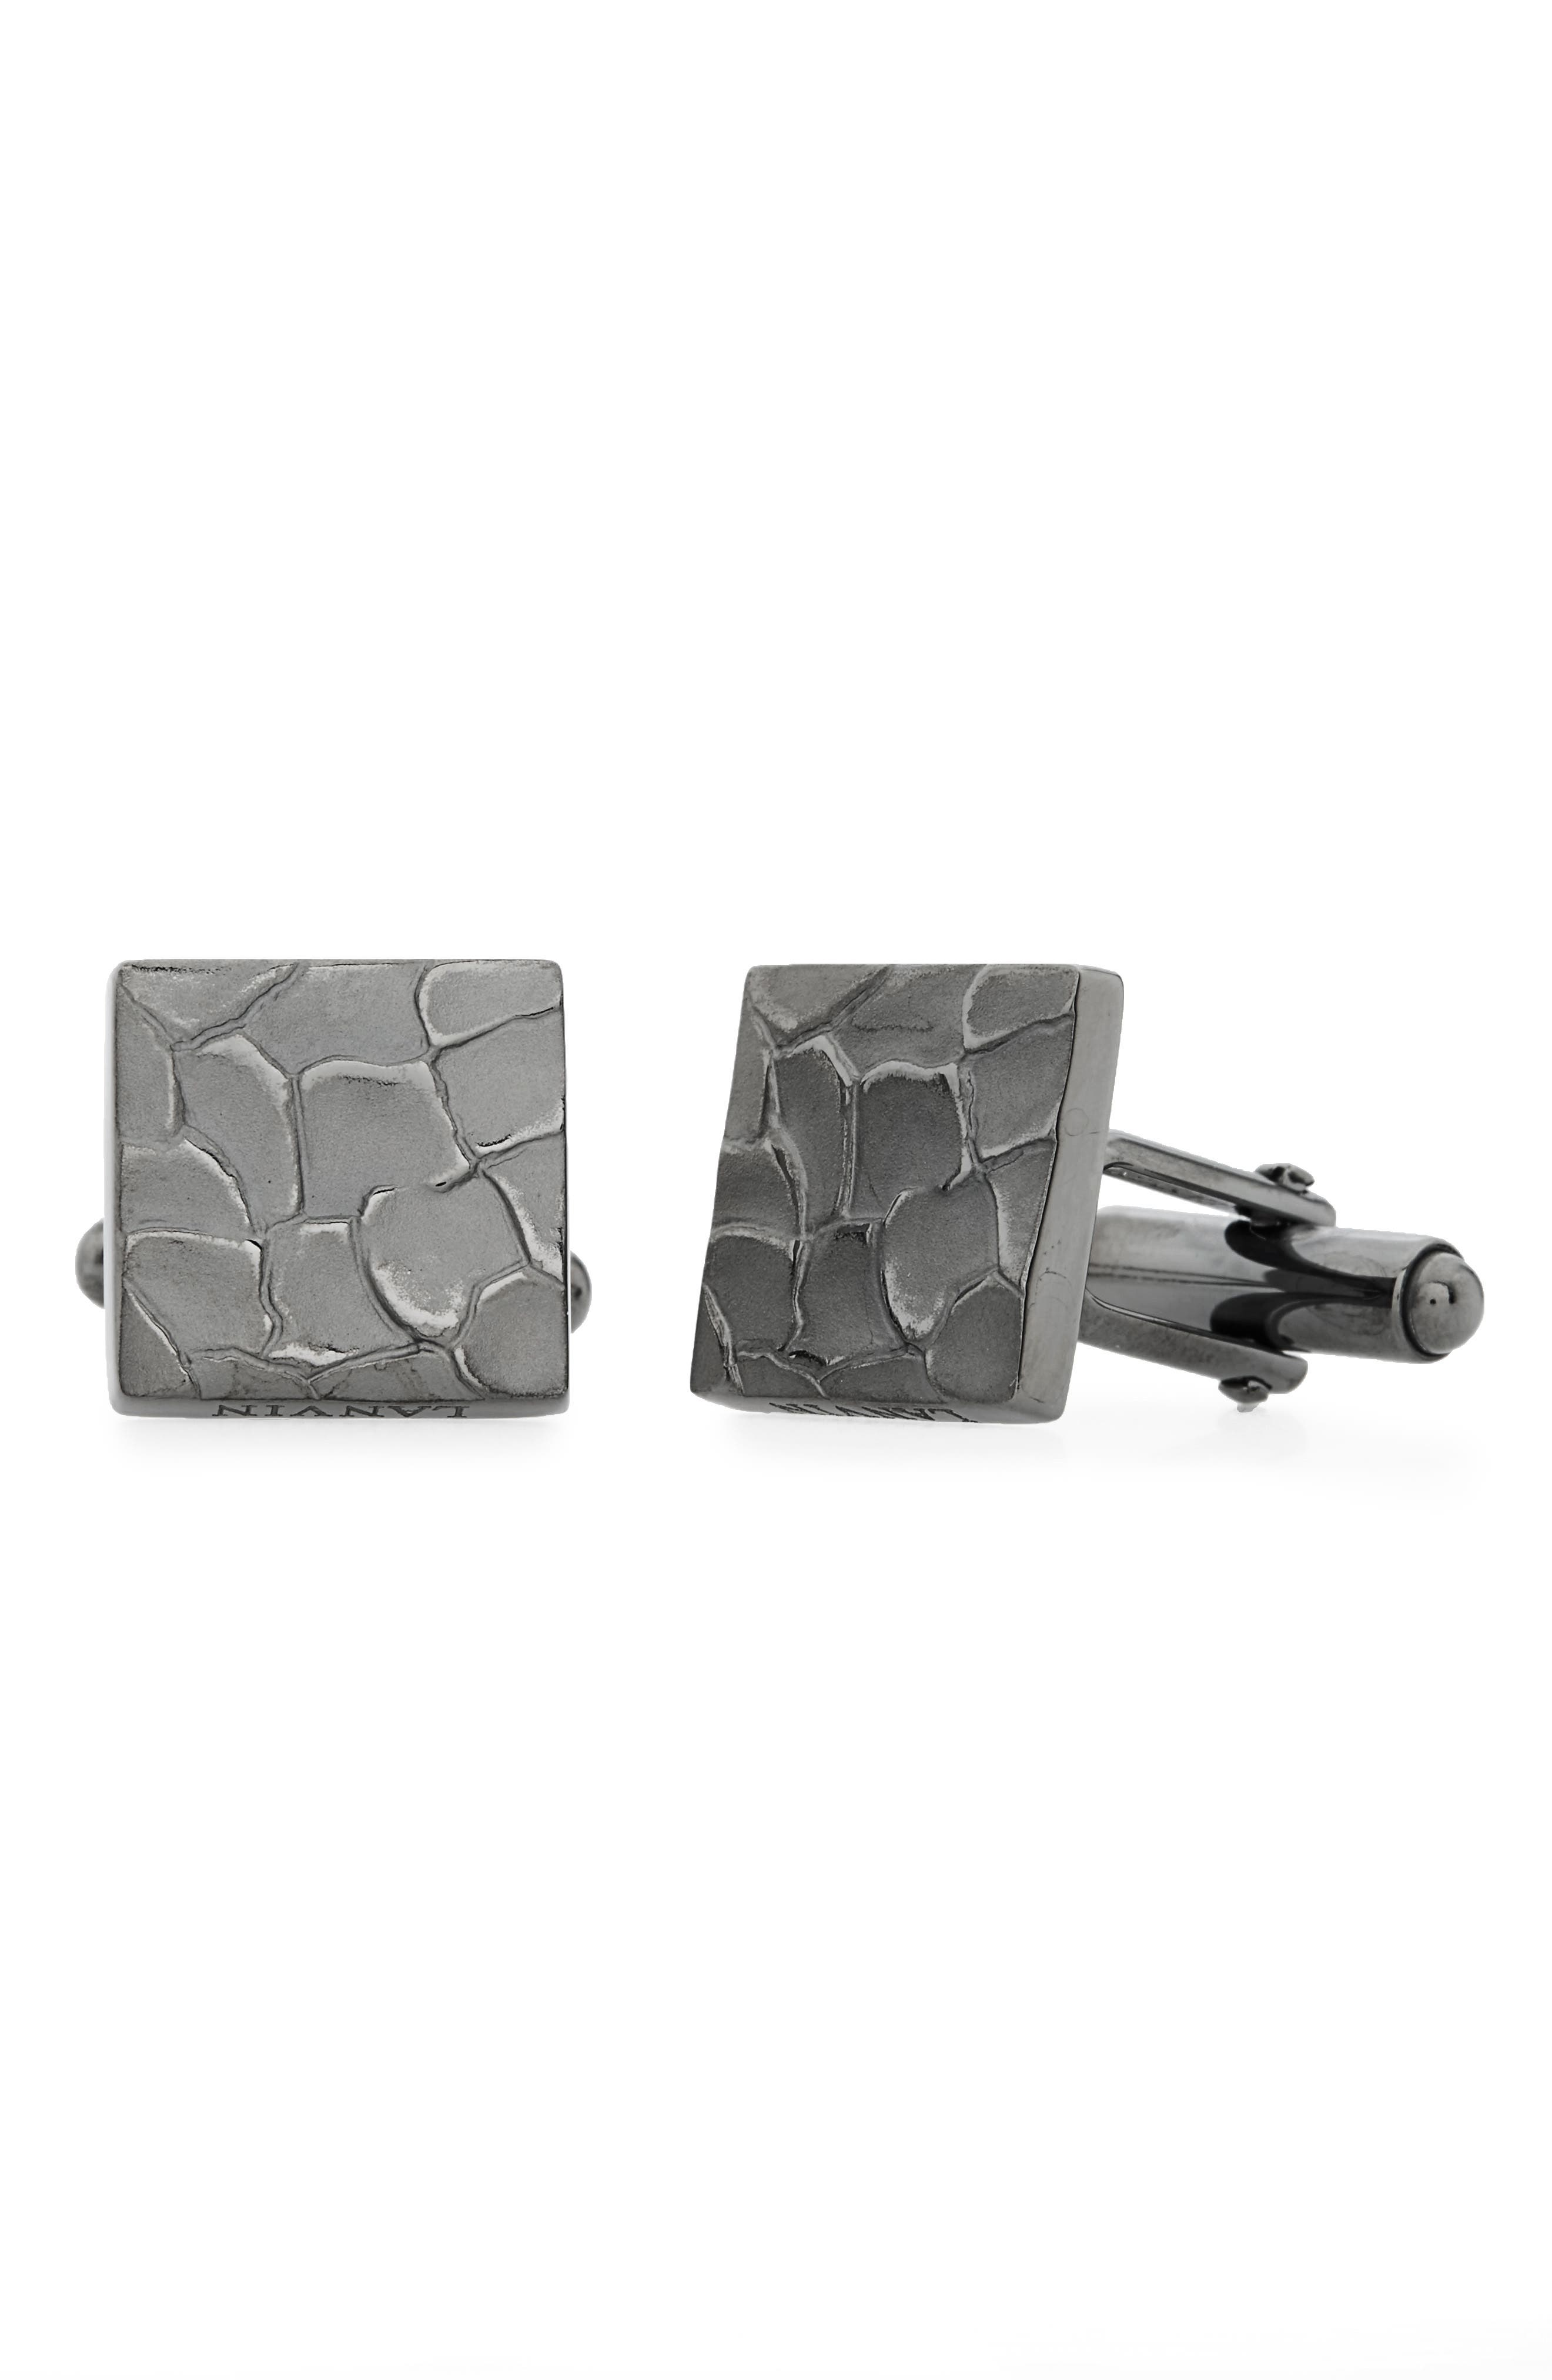 Textured Square Cuff Links,                         Main,                         color, Ruthenium Plated